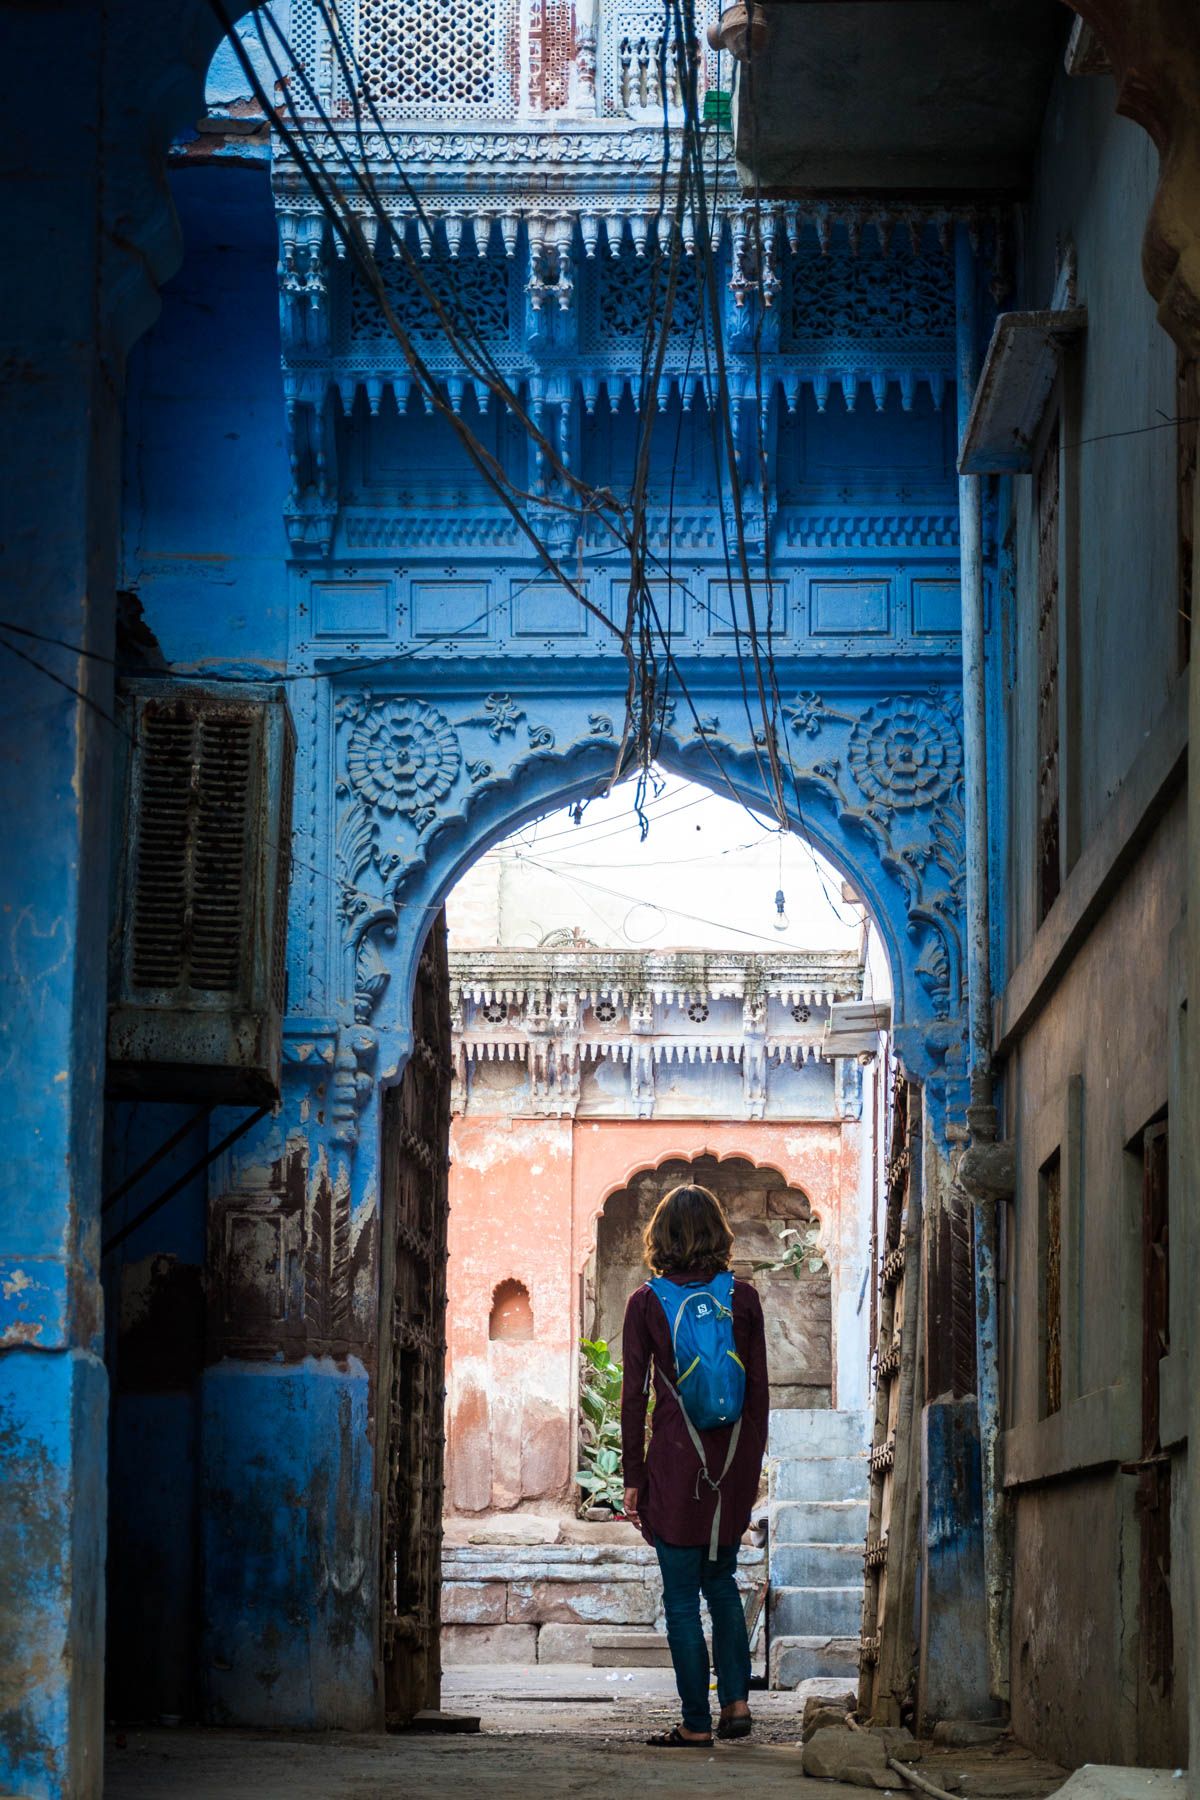 Wandering through one of many blue arches in Jodhpur, Rajasthan, India